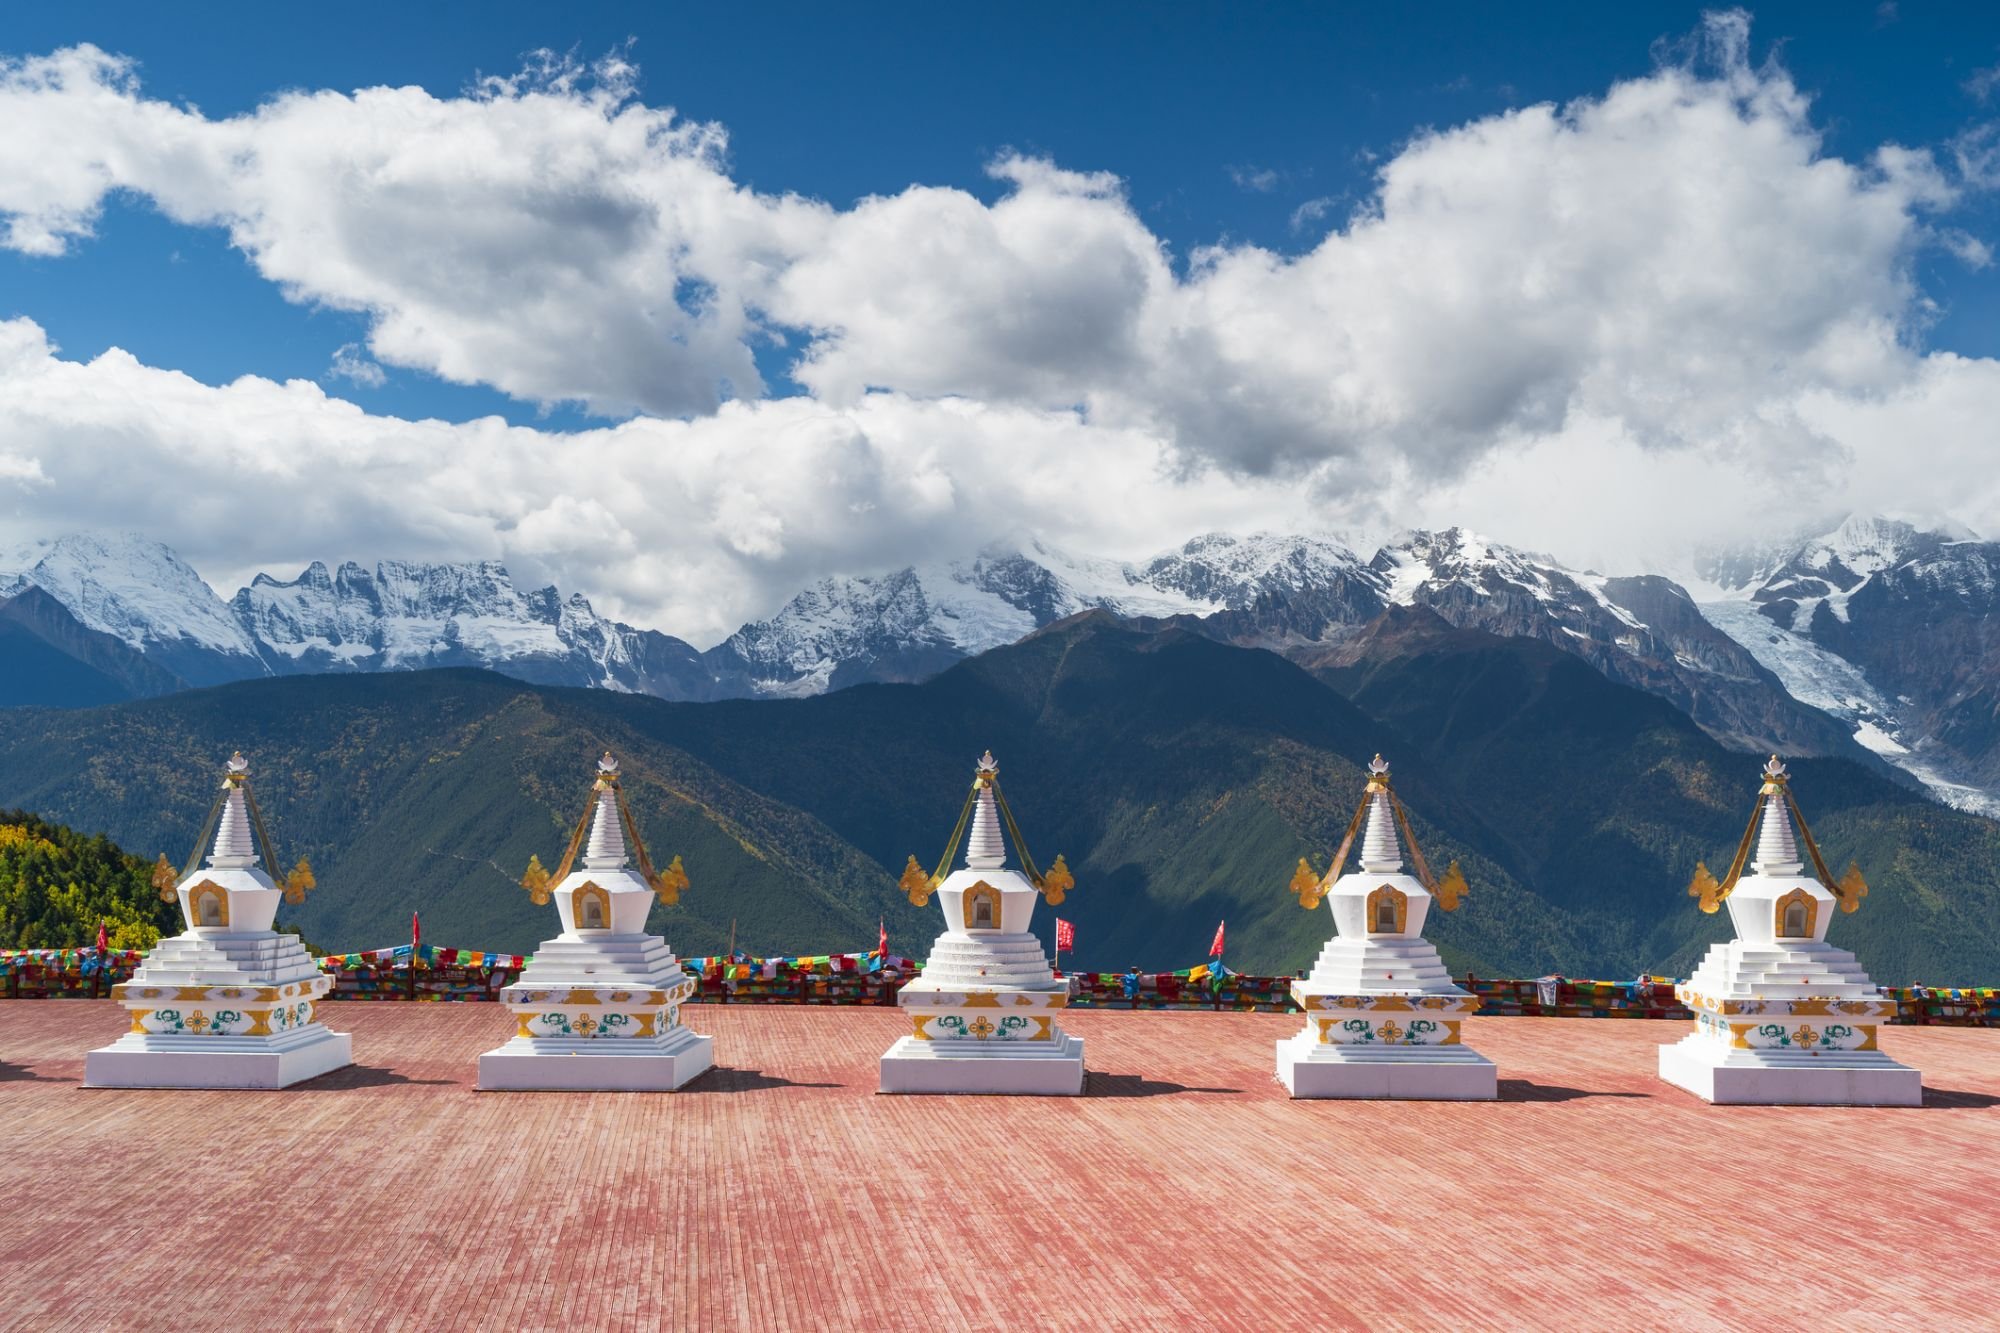 Winter In Asia The Best Warm And Cold Destinations To Inspire Your Next Holiday Tatler Hong Kong